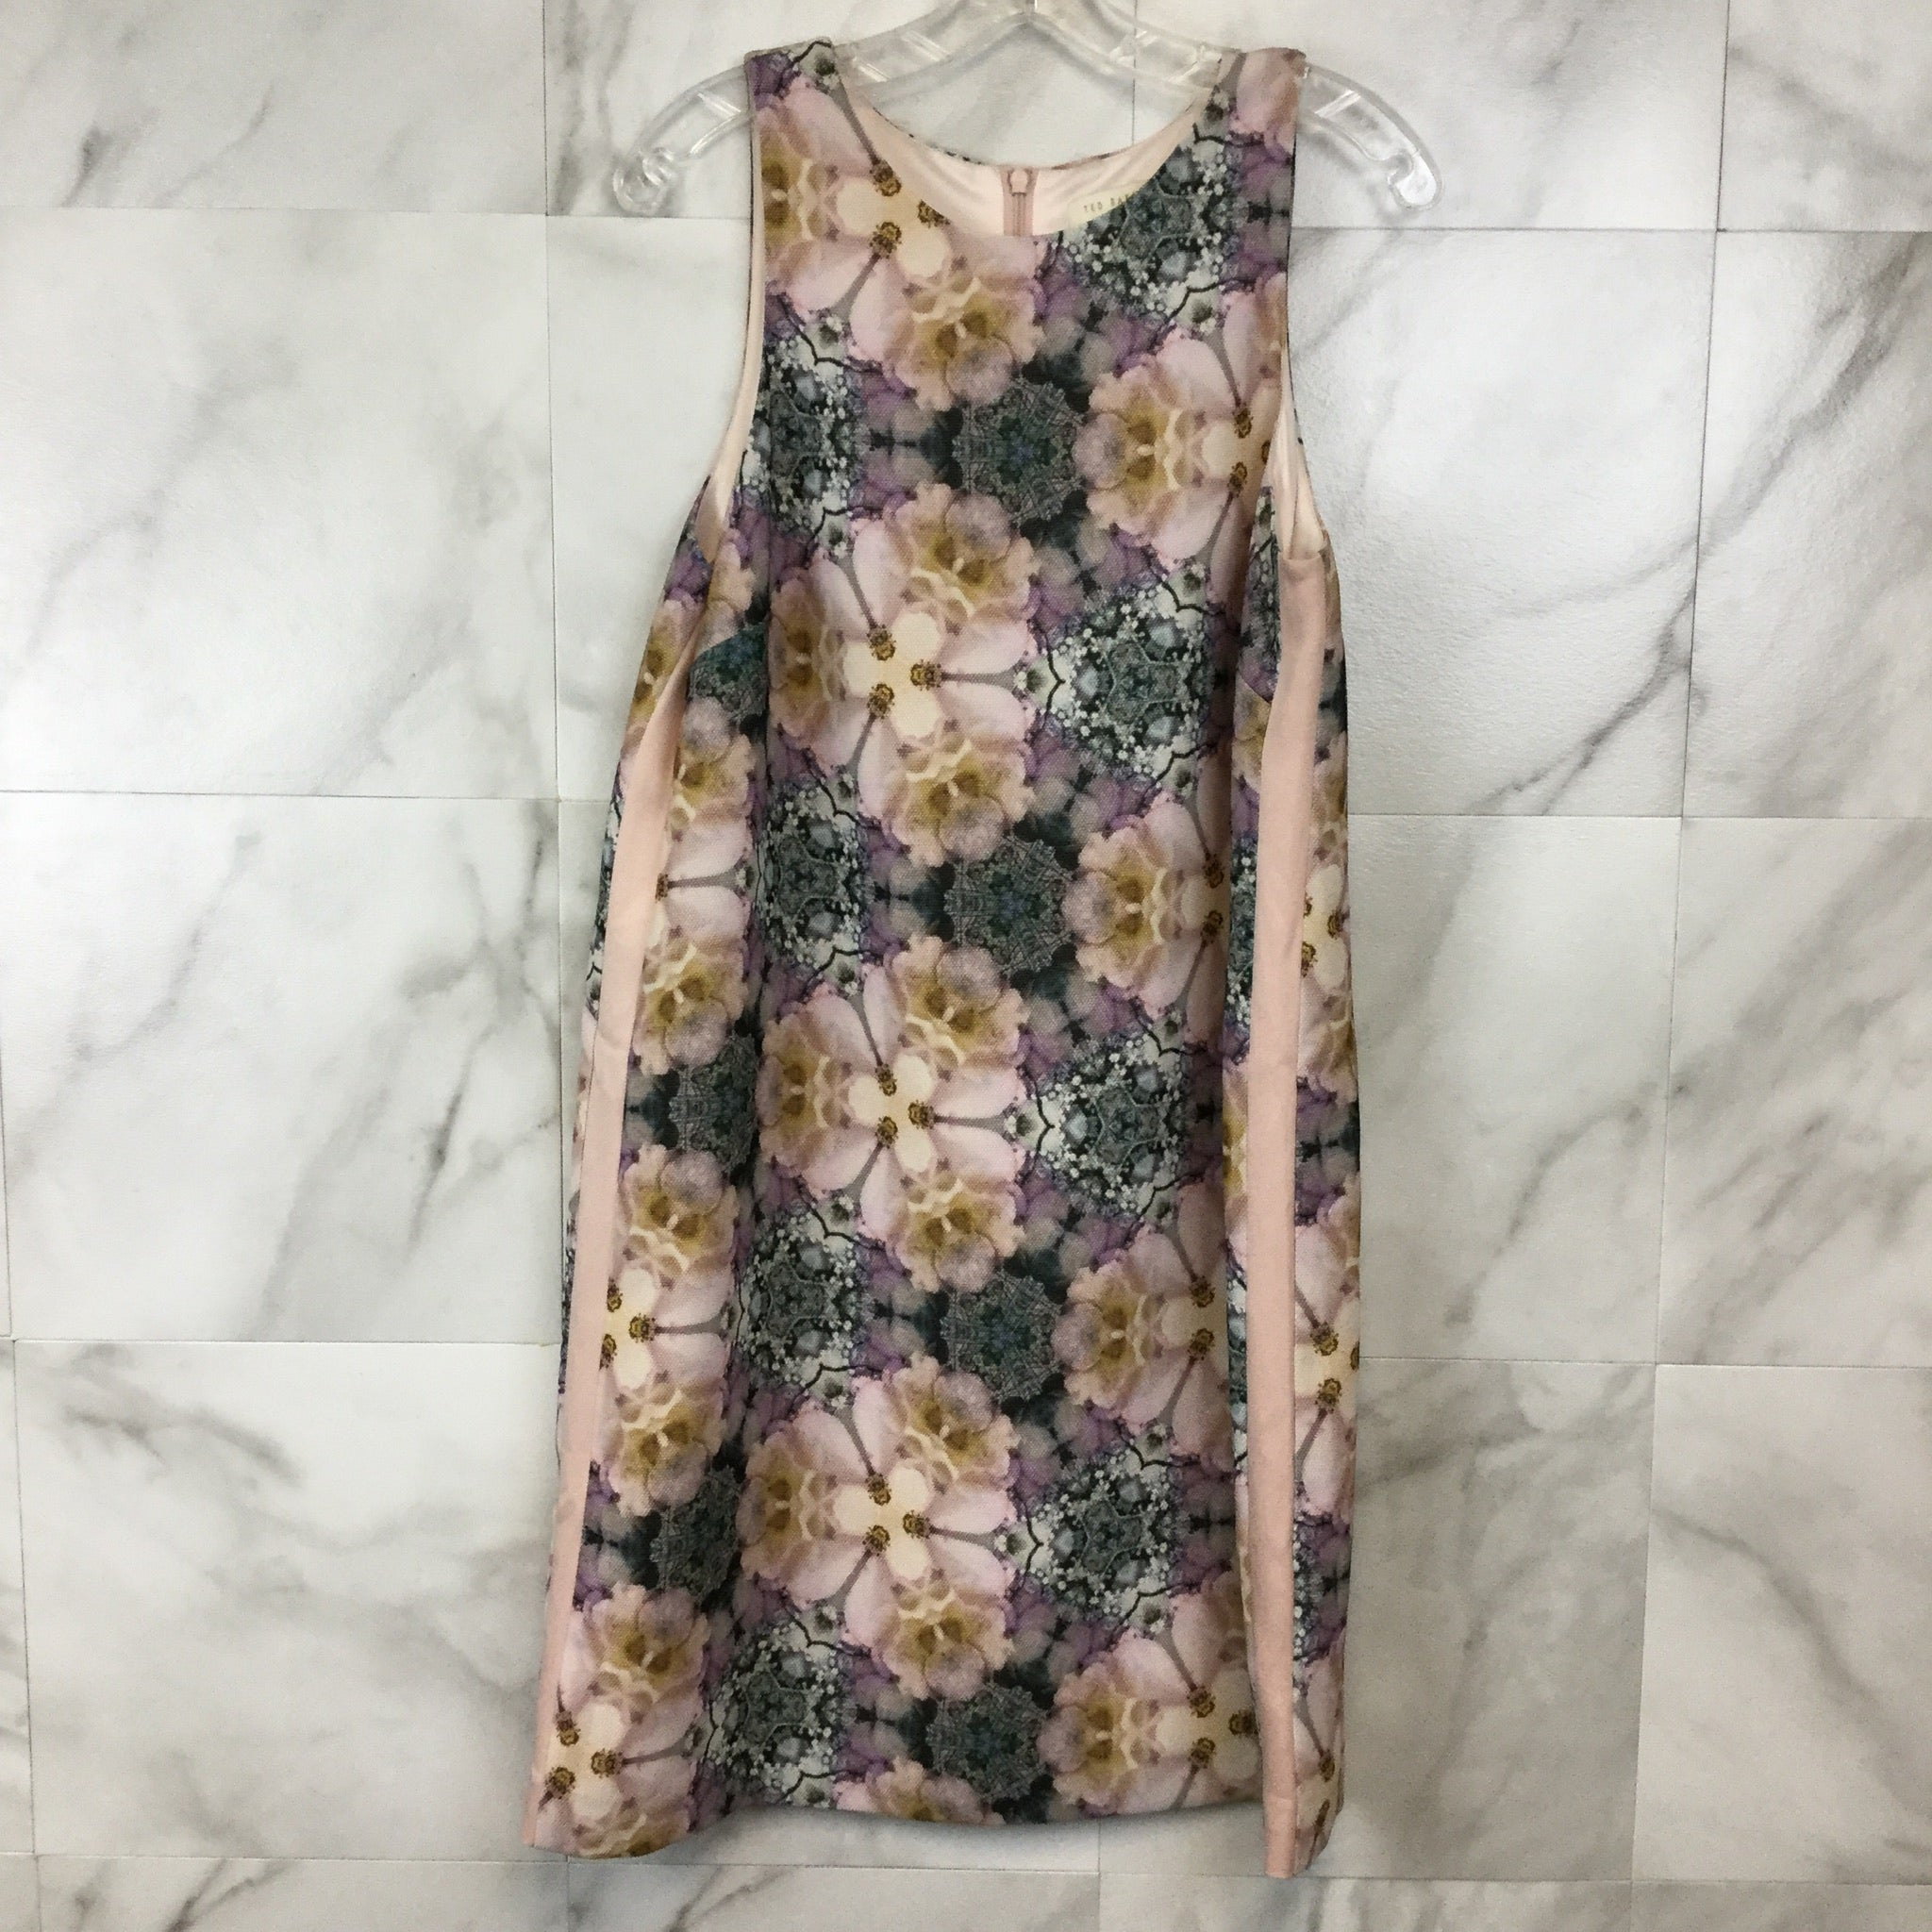 Ted Baker Illidia Dress - size US 8